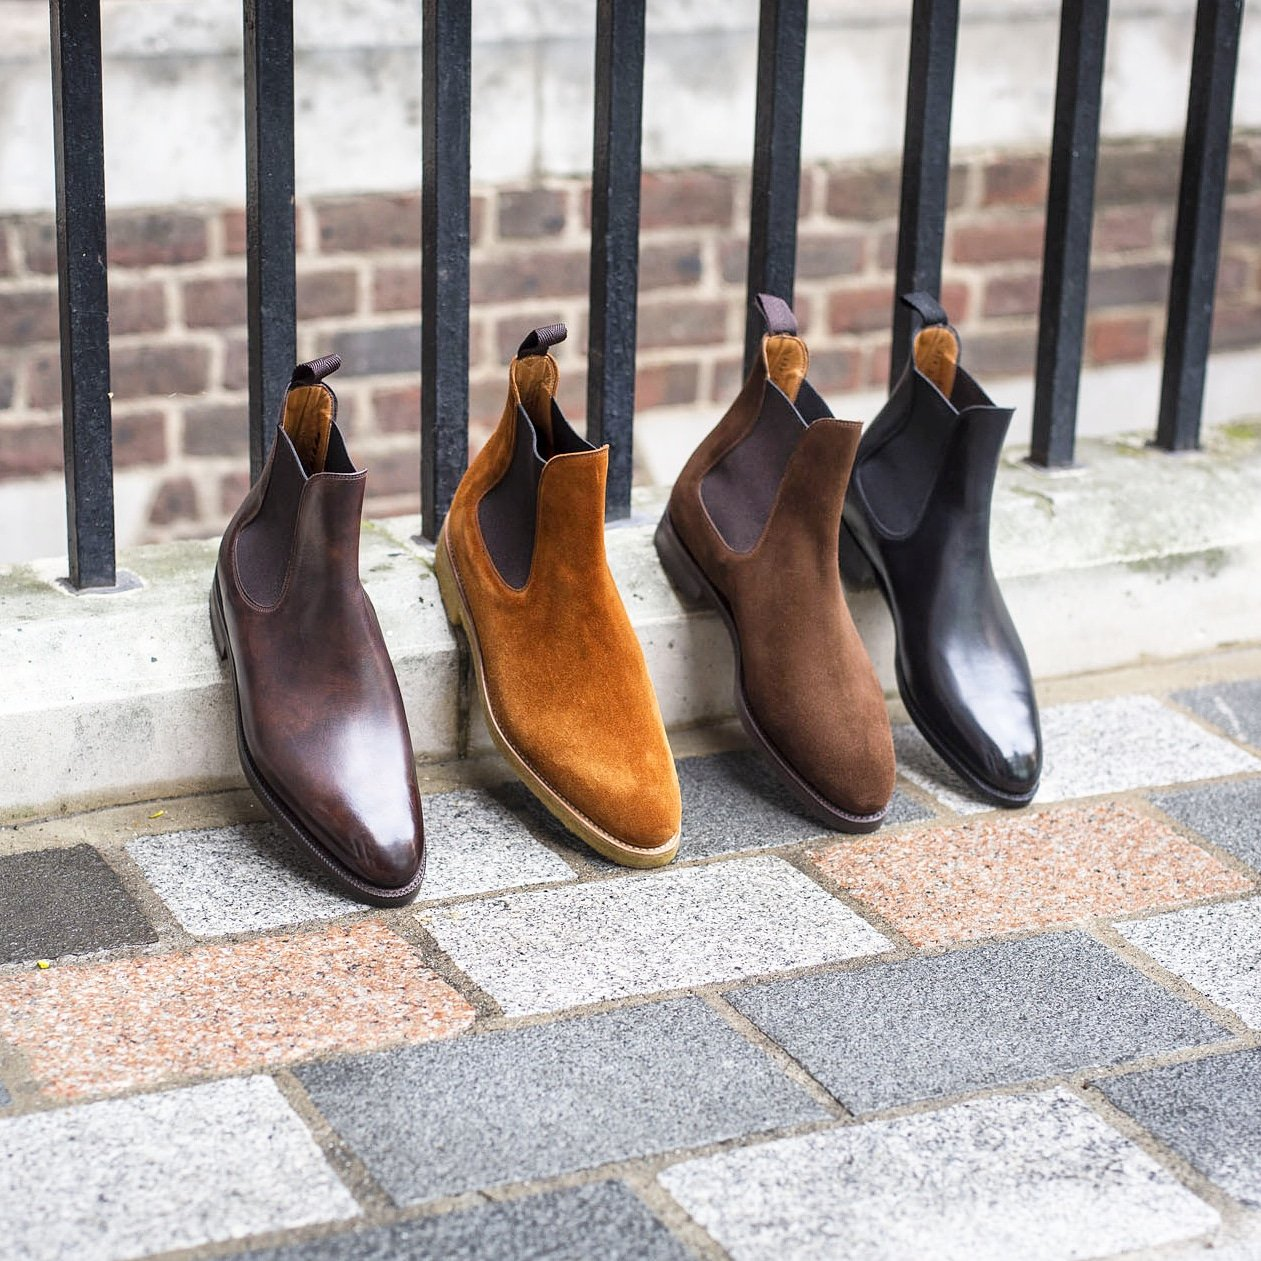 Chelsea Boots - Smart or Casual? - The